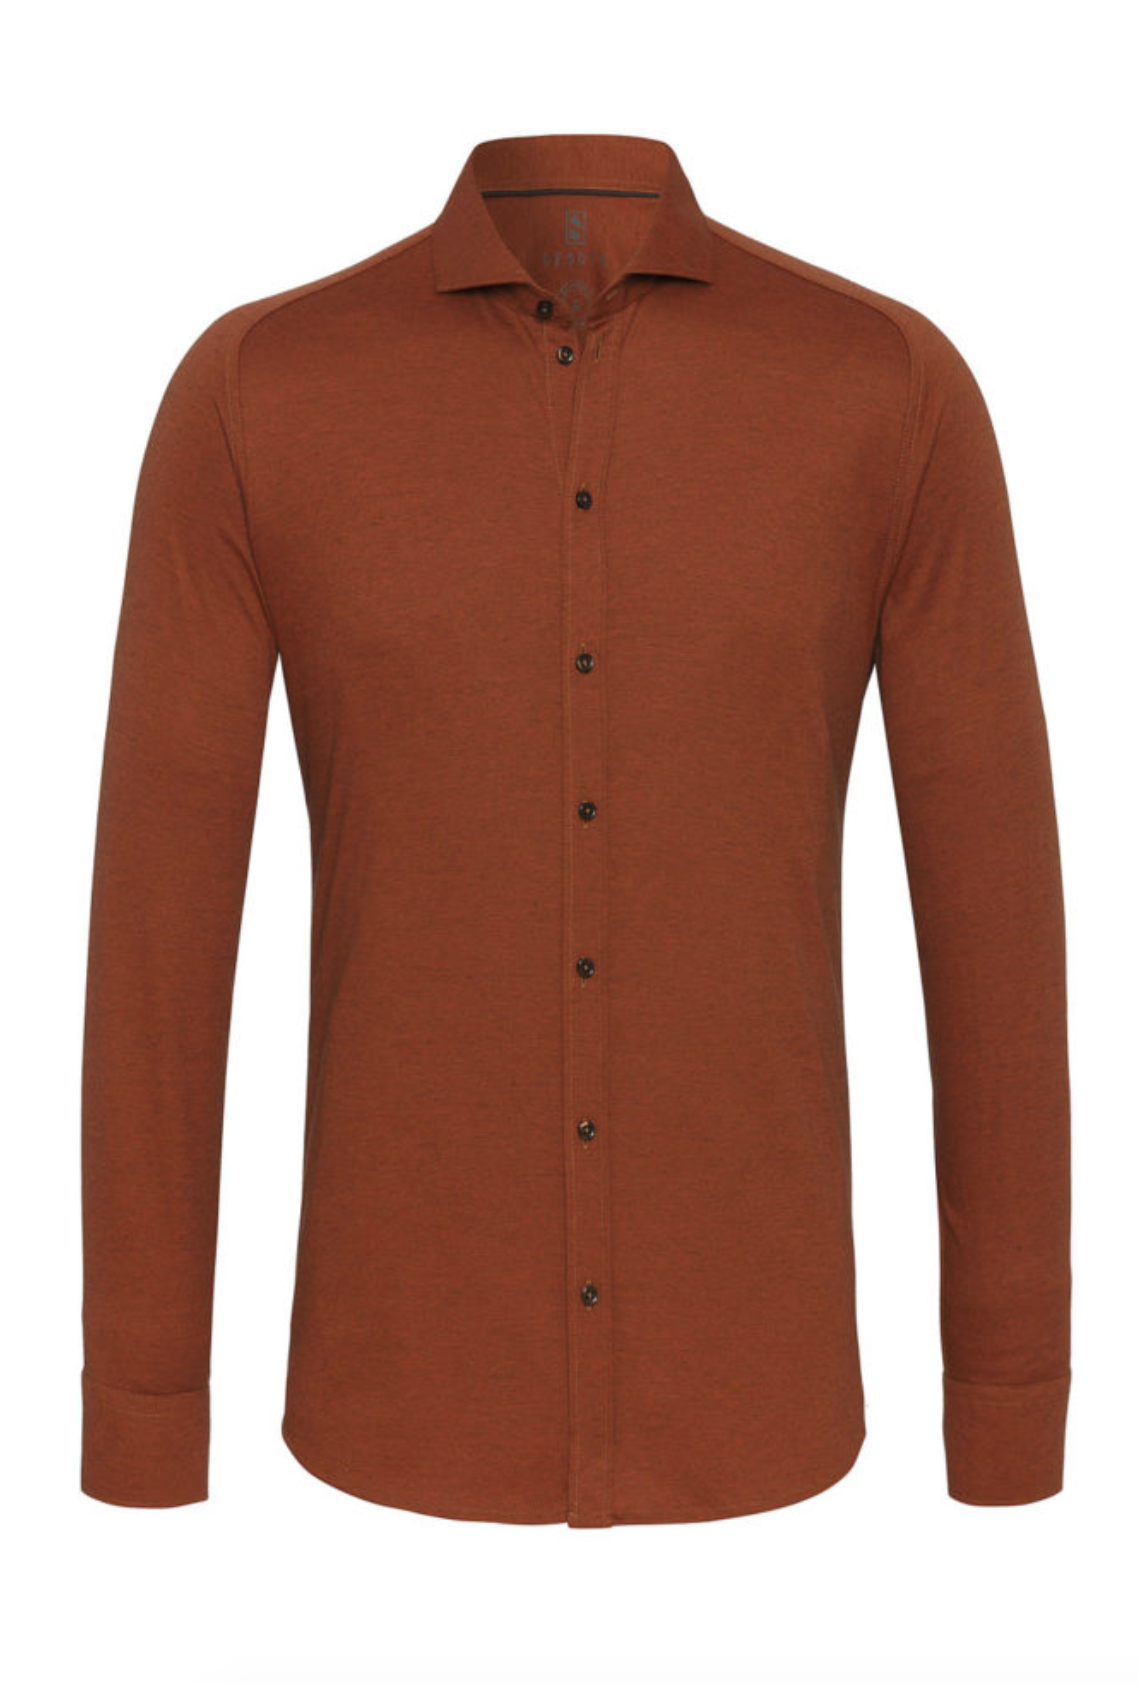 DESOTO DRESS-SHIRTS de nummer 1 in jersey shirts